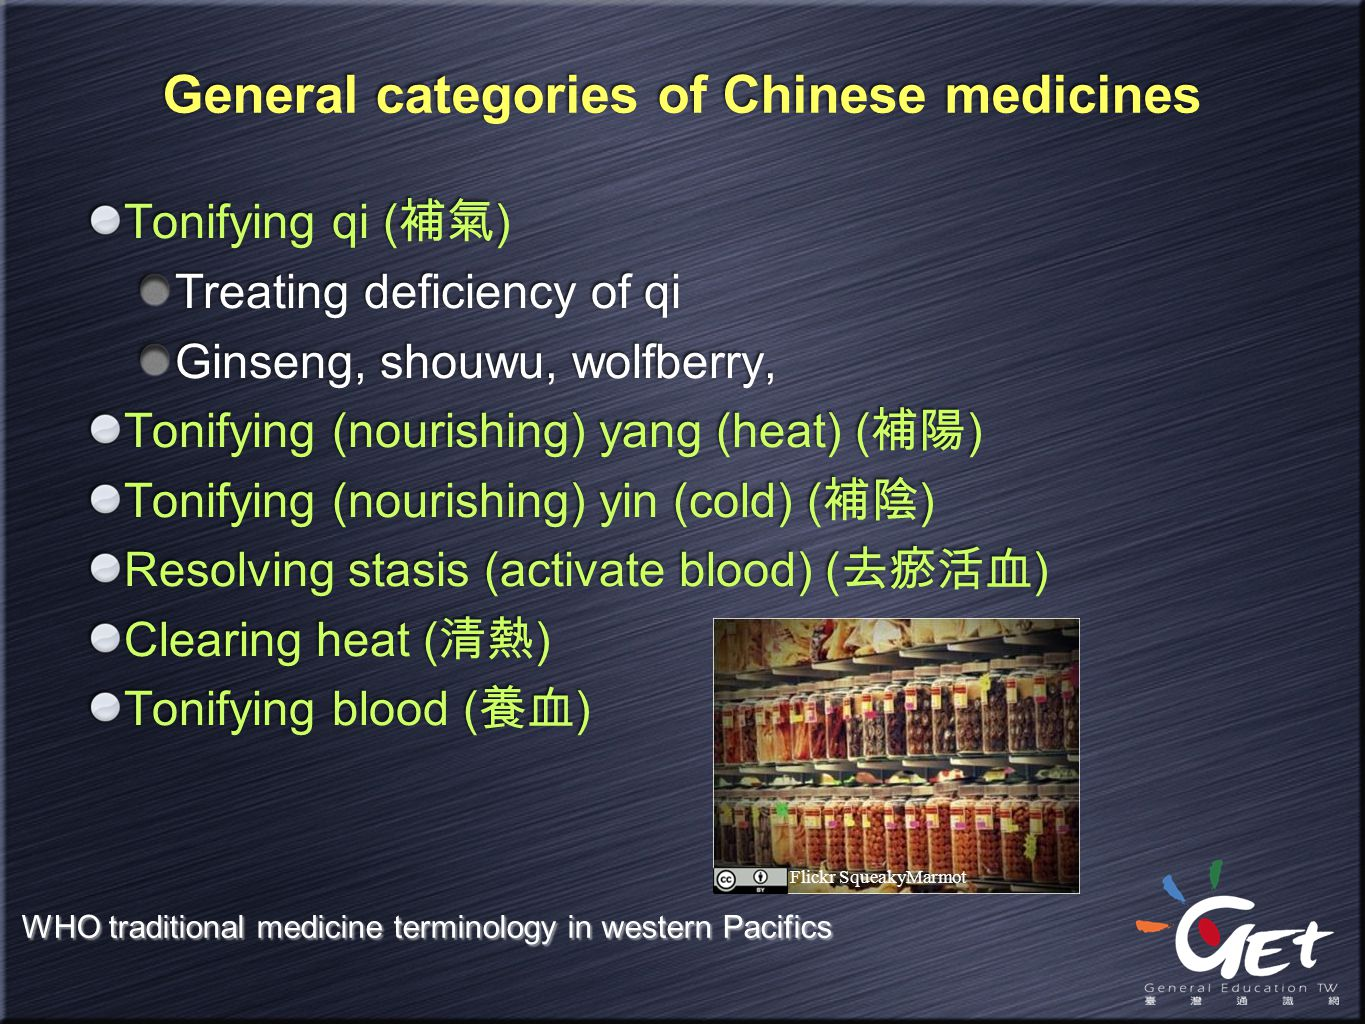 General categories of Chinese medicines